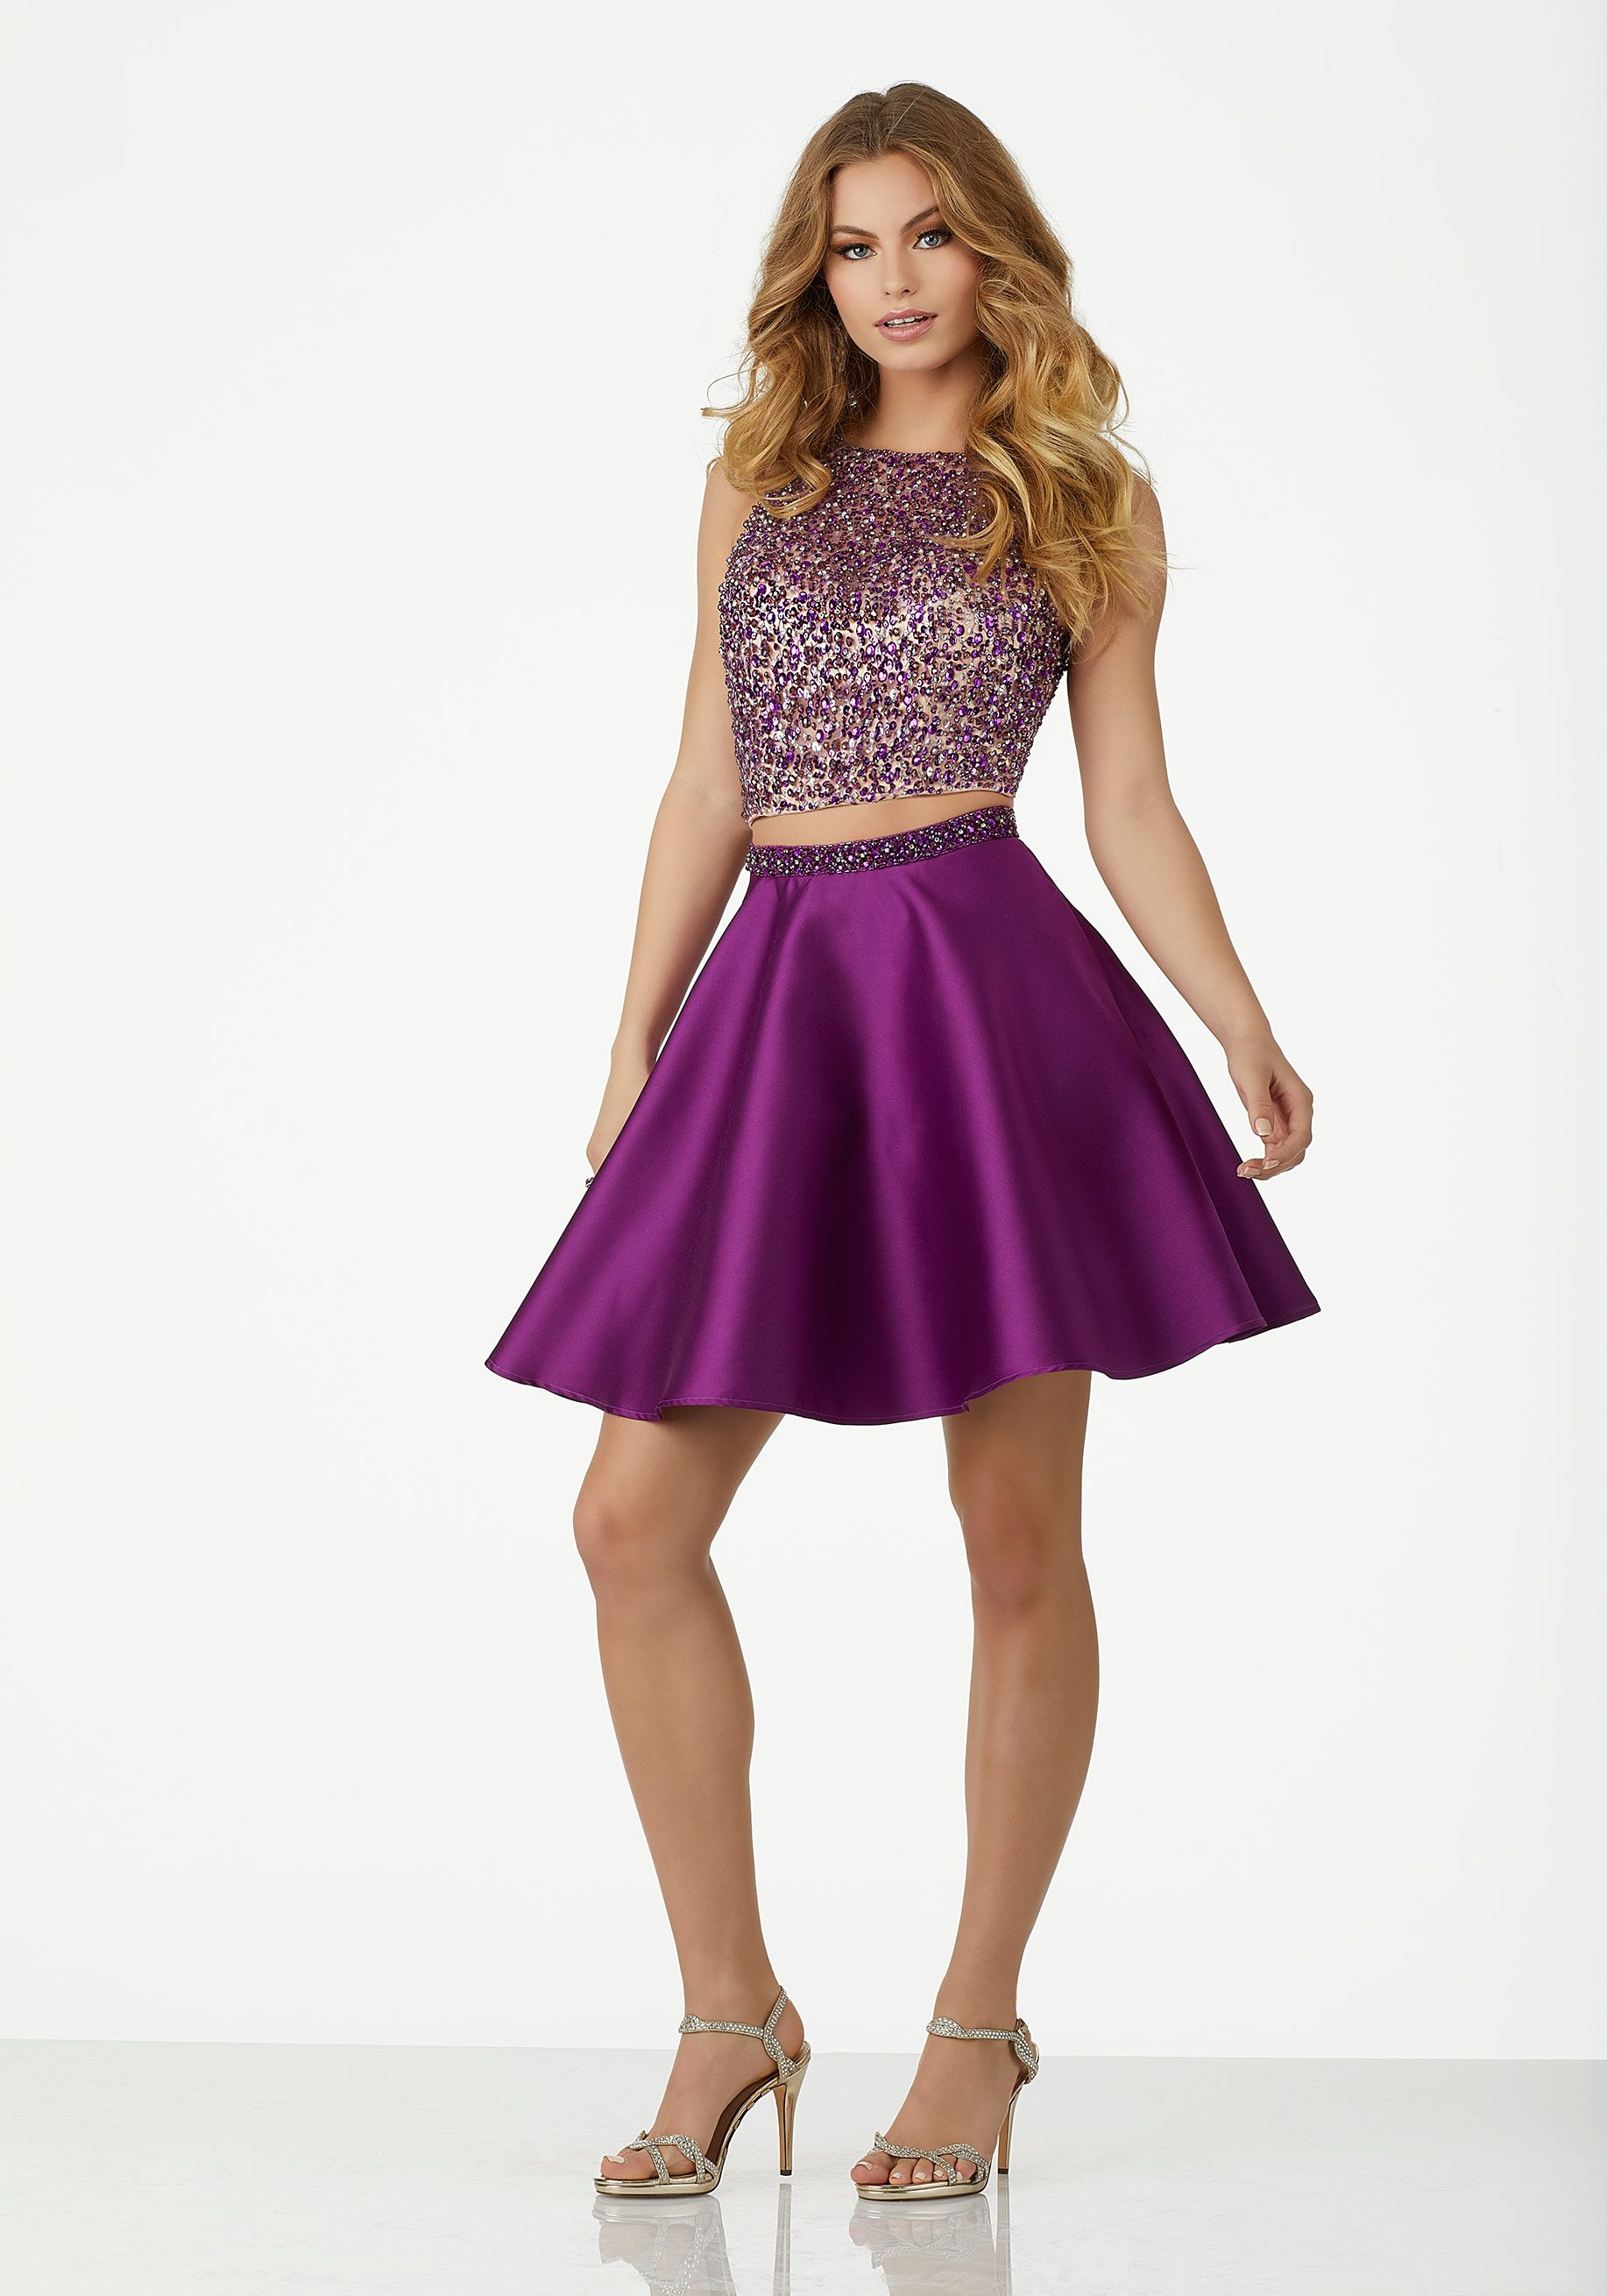 4df240a9eab Two-Piece Prom Dress with Floral Printed Organza Skirt and Beaded Larissa  Satin Top. Double Strap Detail. Zipper Back. Colors Available  Lilac Floral